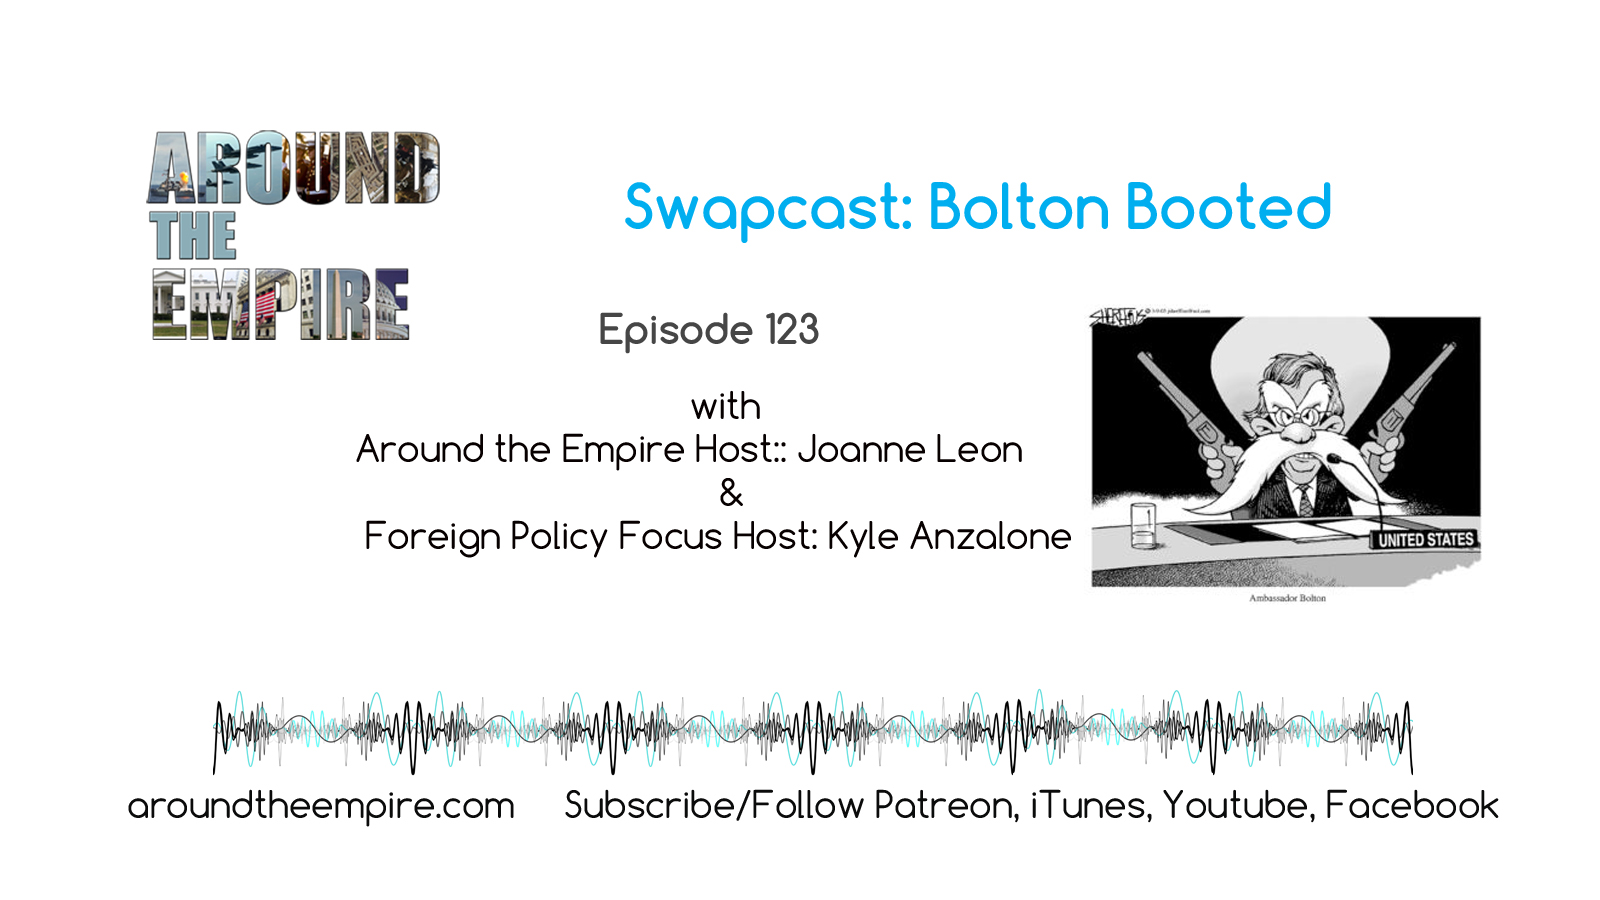 ep 123 Swapcast: Bolton Booted